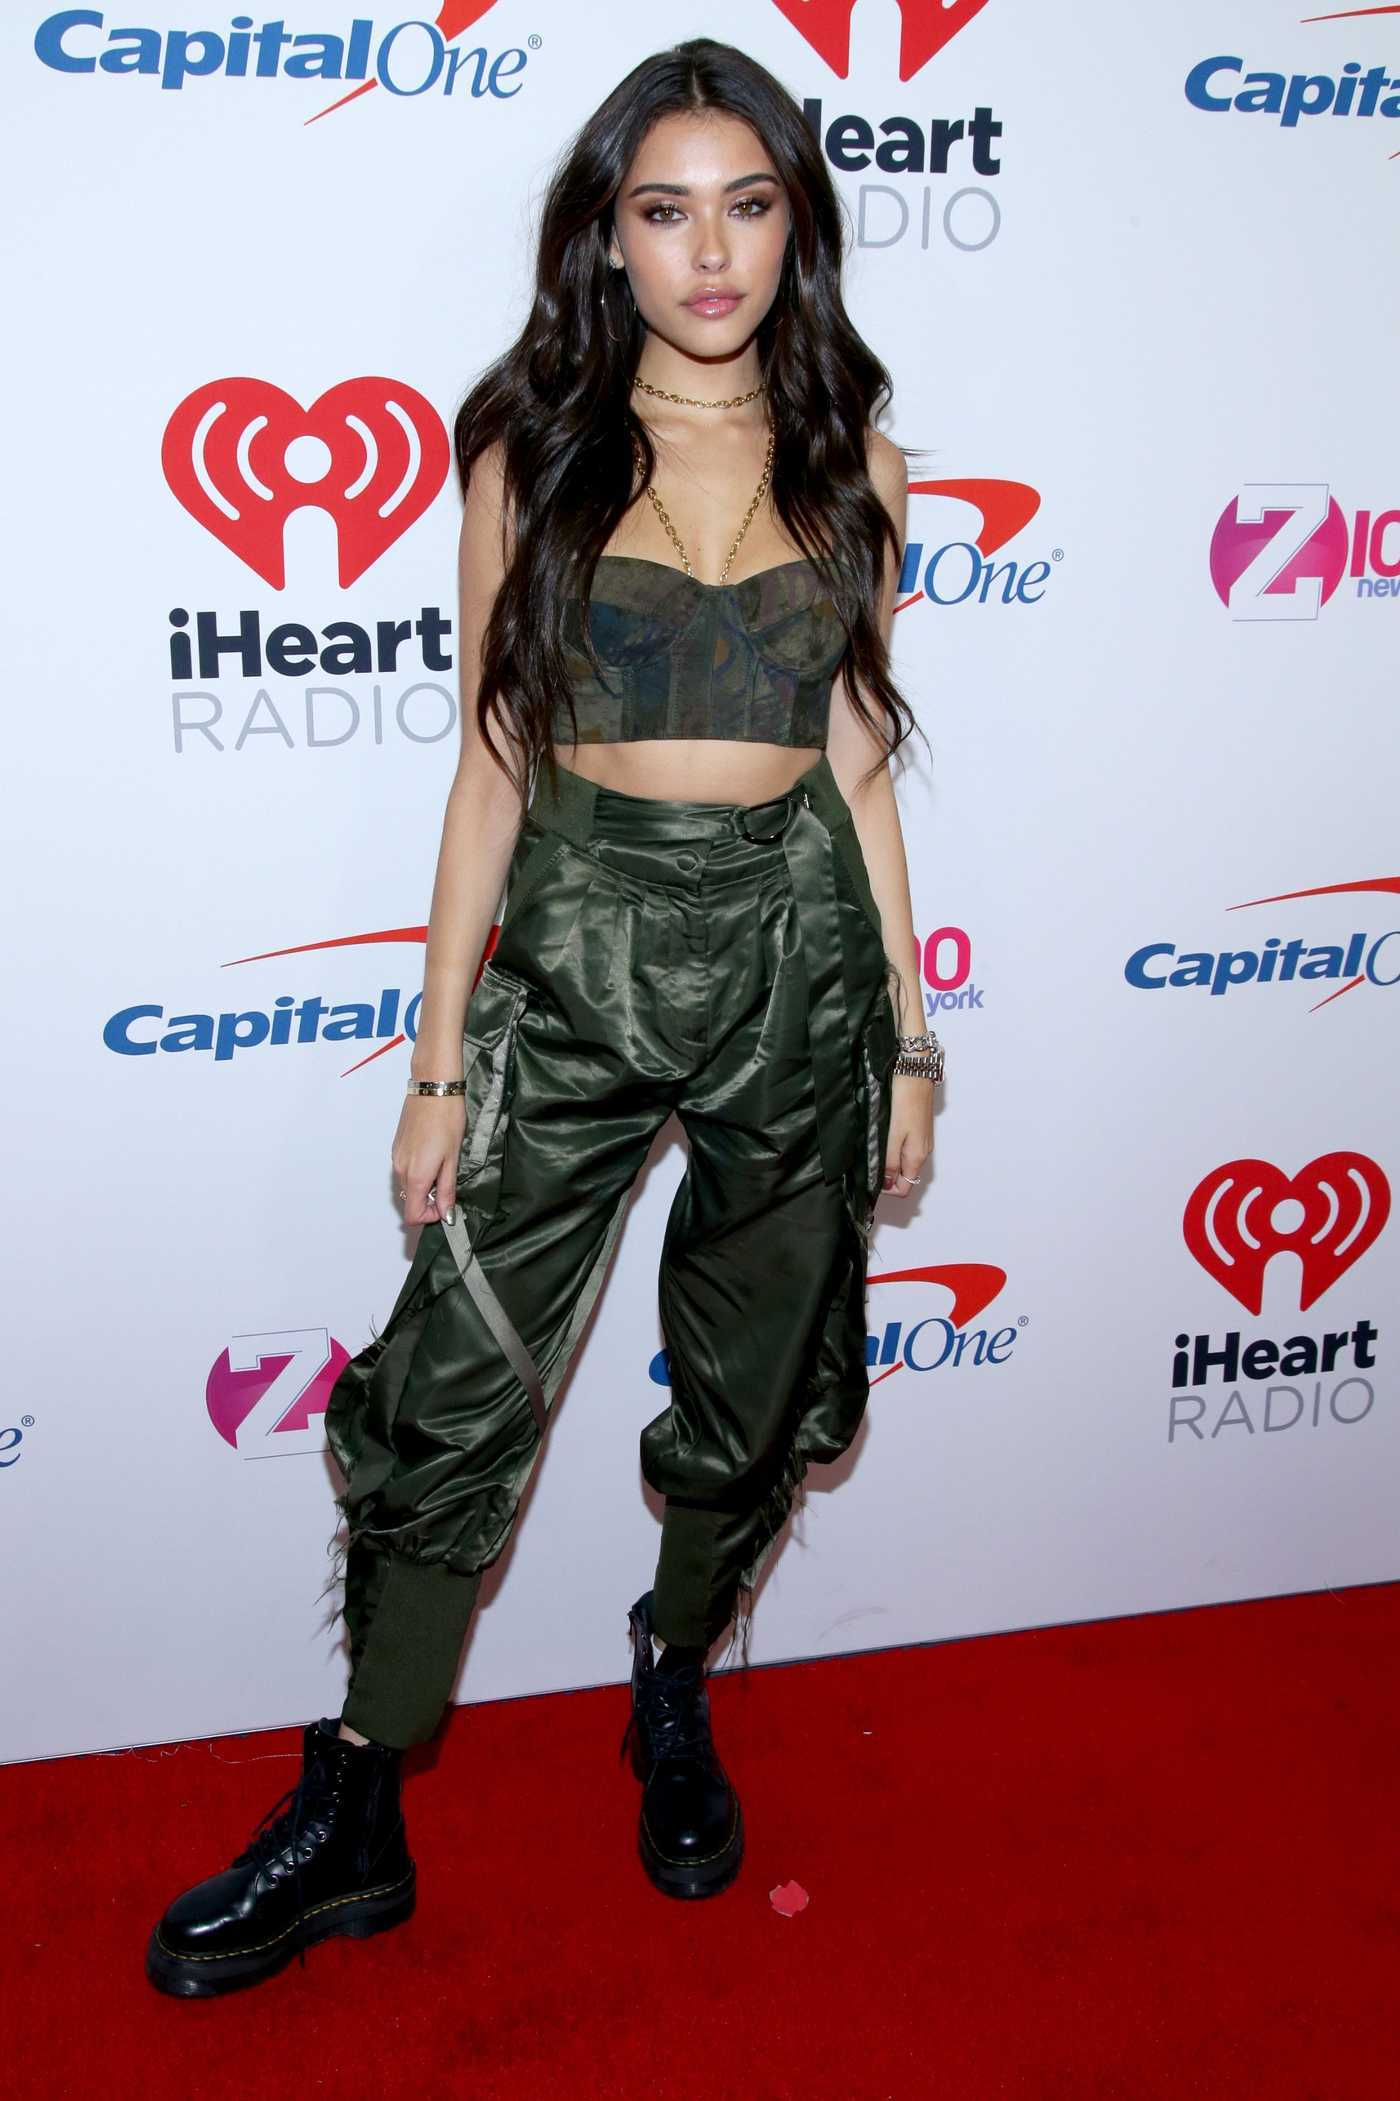 Madison Beer Attends Z100's Jingle Ball in New York City 12/07/2018